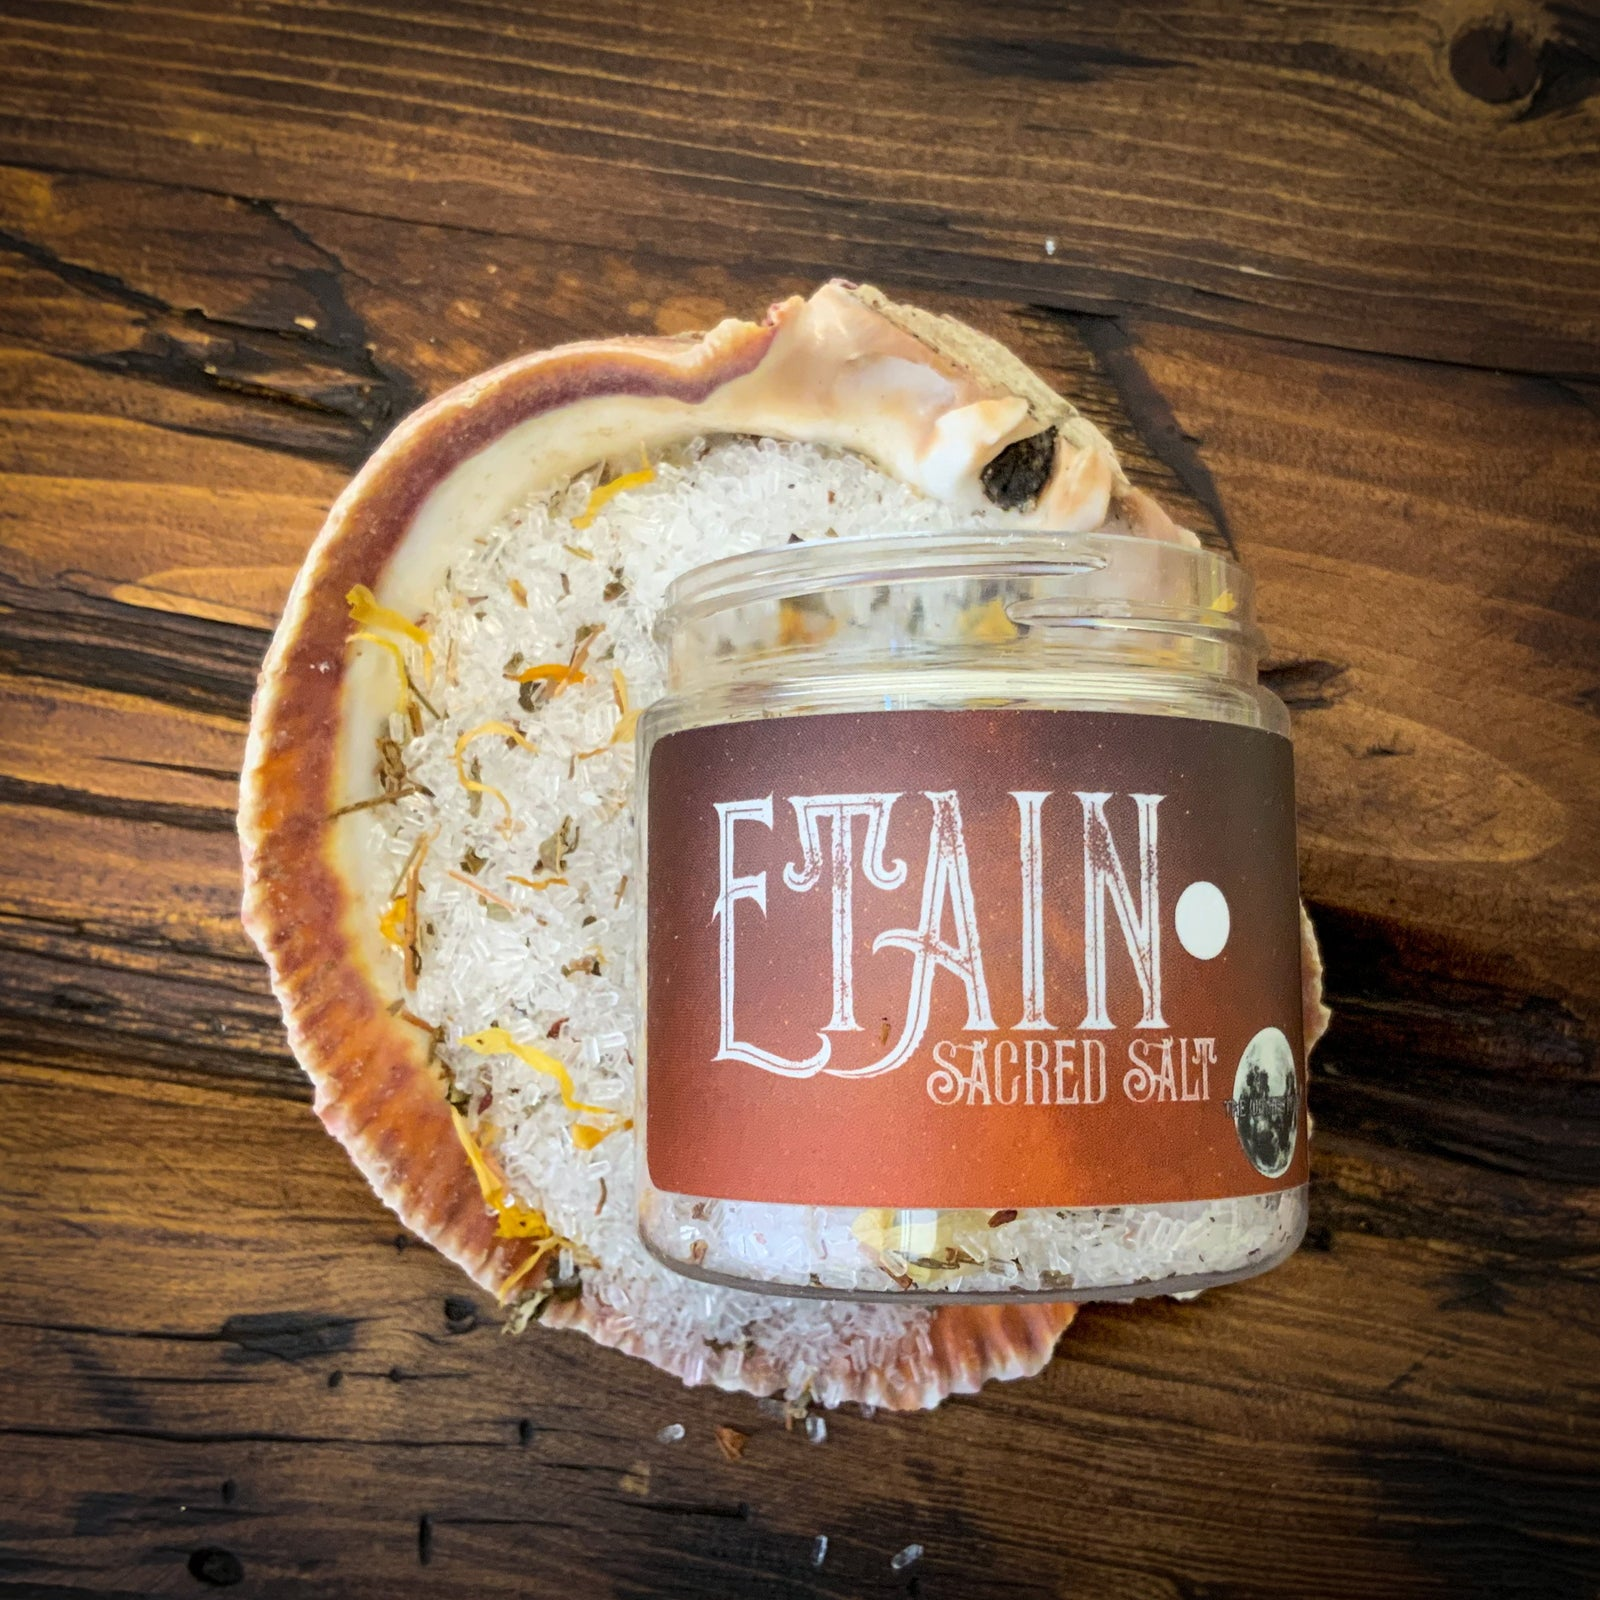 Sacred Bath Salt (Etain)